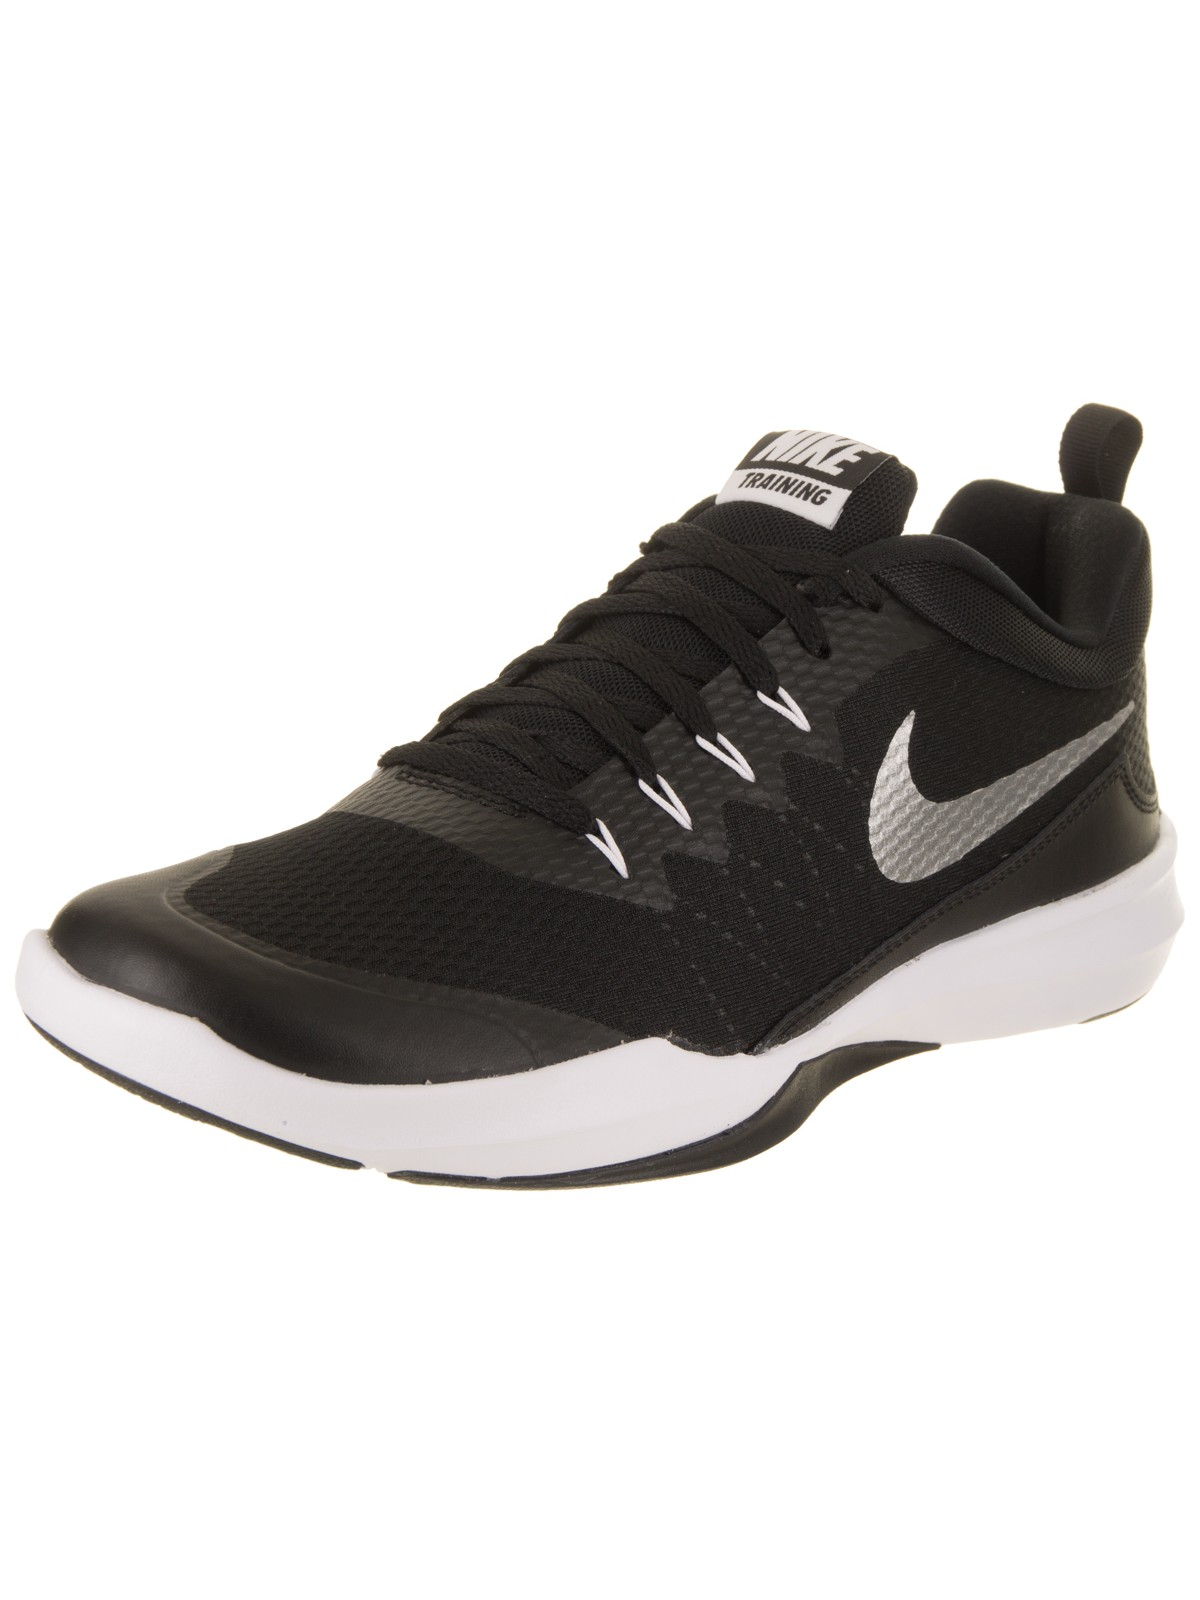 4c7371c7838 Nike - Nike Men s Legend Trainer Training Shoe - Walmart.com